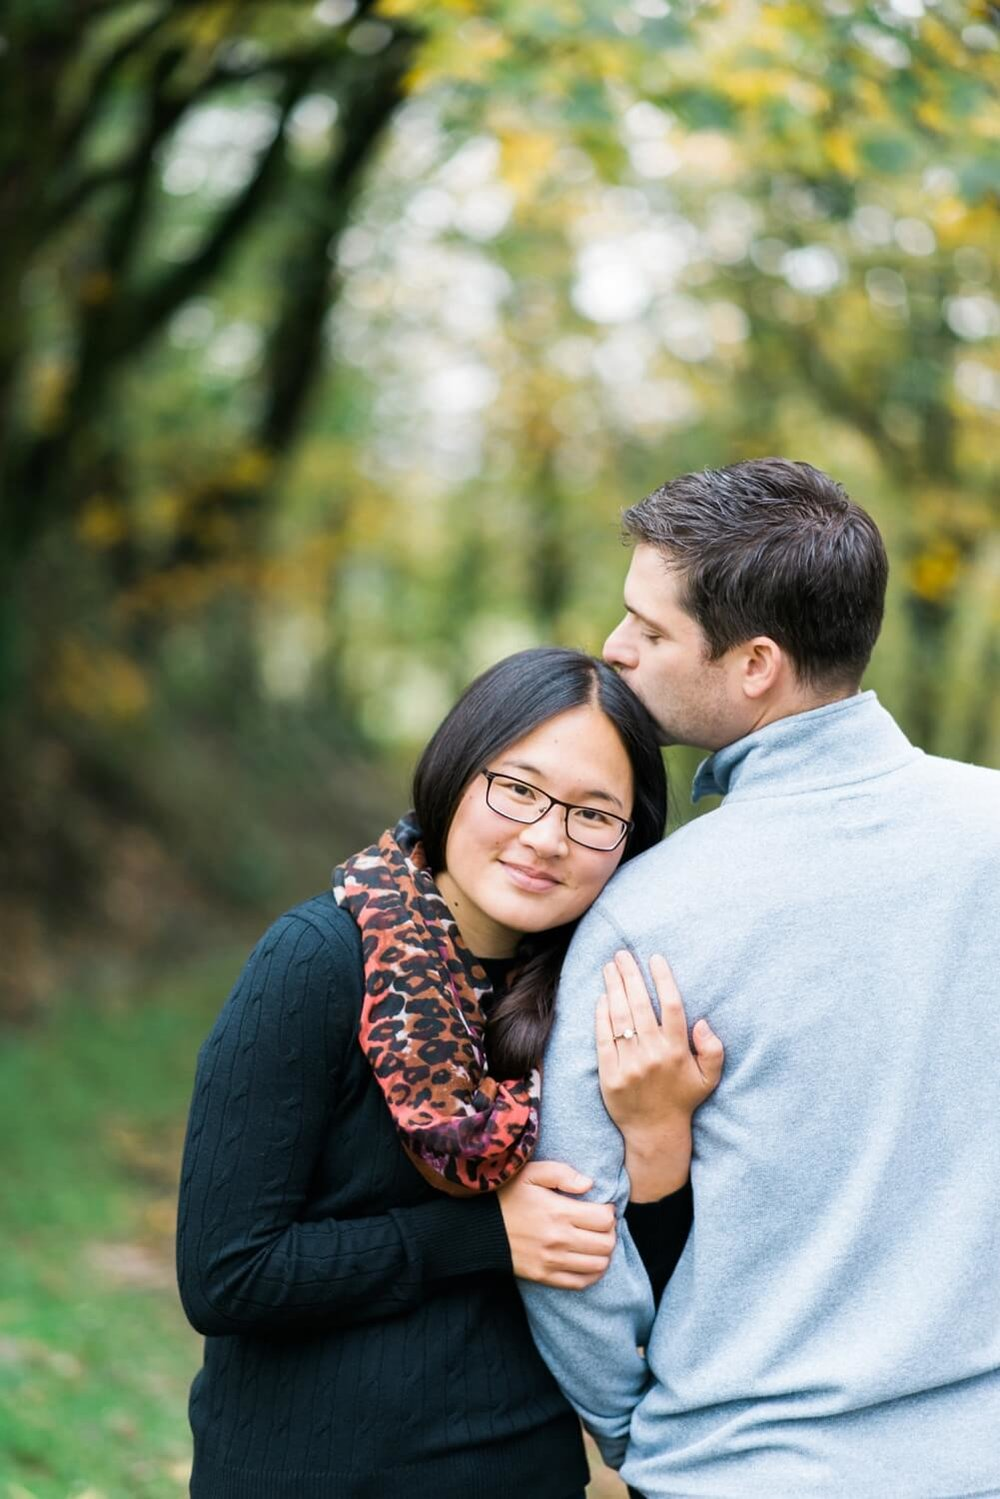 portland-engagement-colubia-river-gorge-latourell-waterfall-autumn-fall-crown-point-shelley-marie-photo-11_cr.jpg